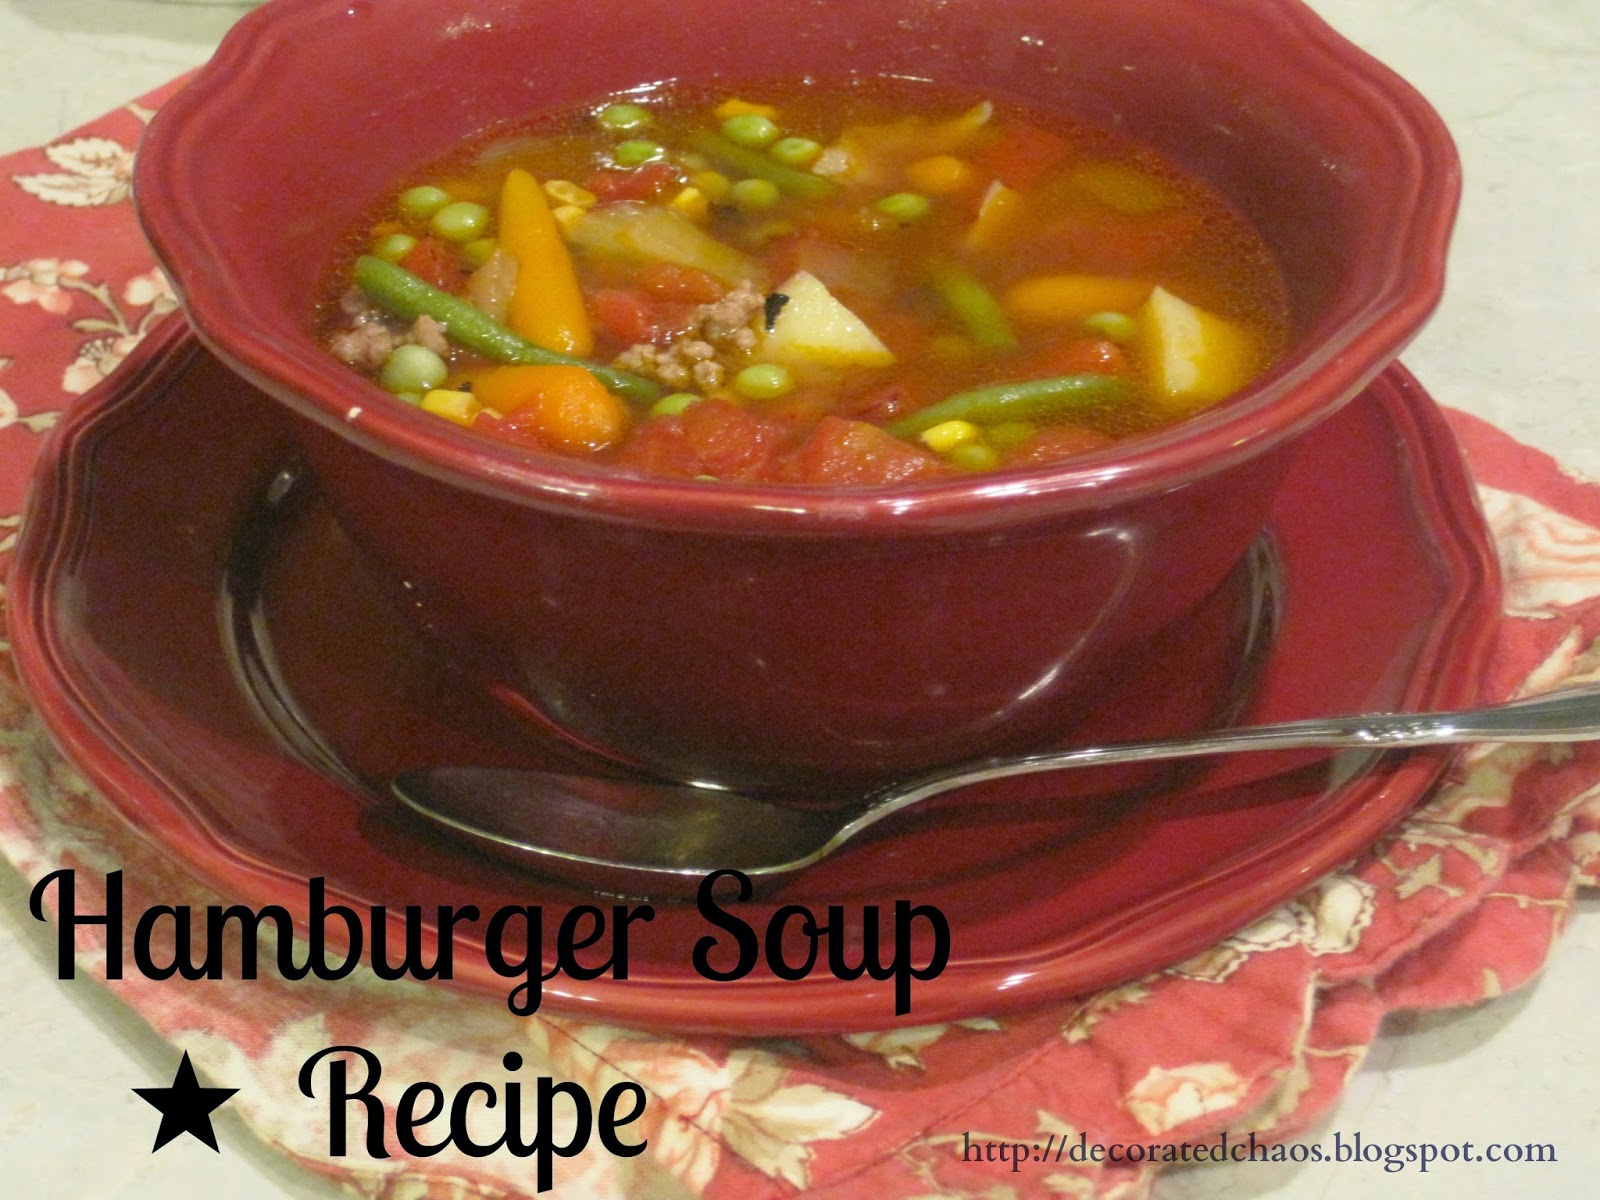 http://decoratedchaos.blogspot.com/2013/10/hamburger-soup-recipe.html